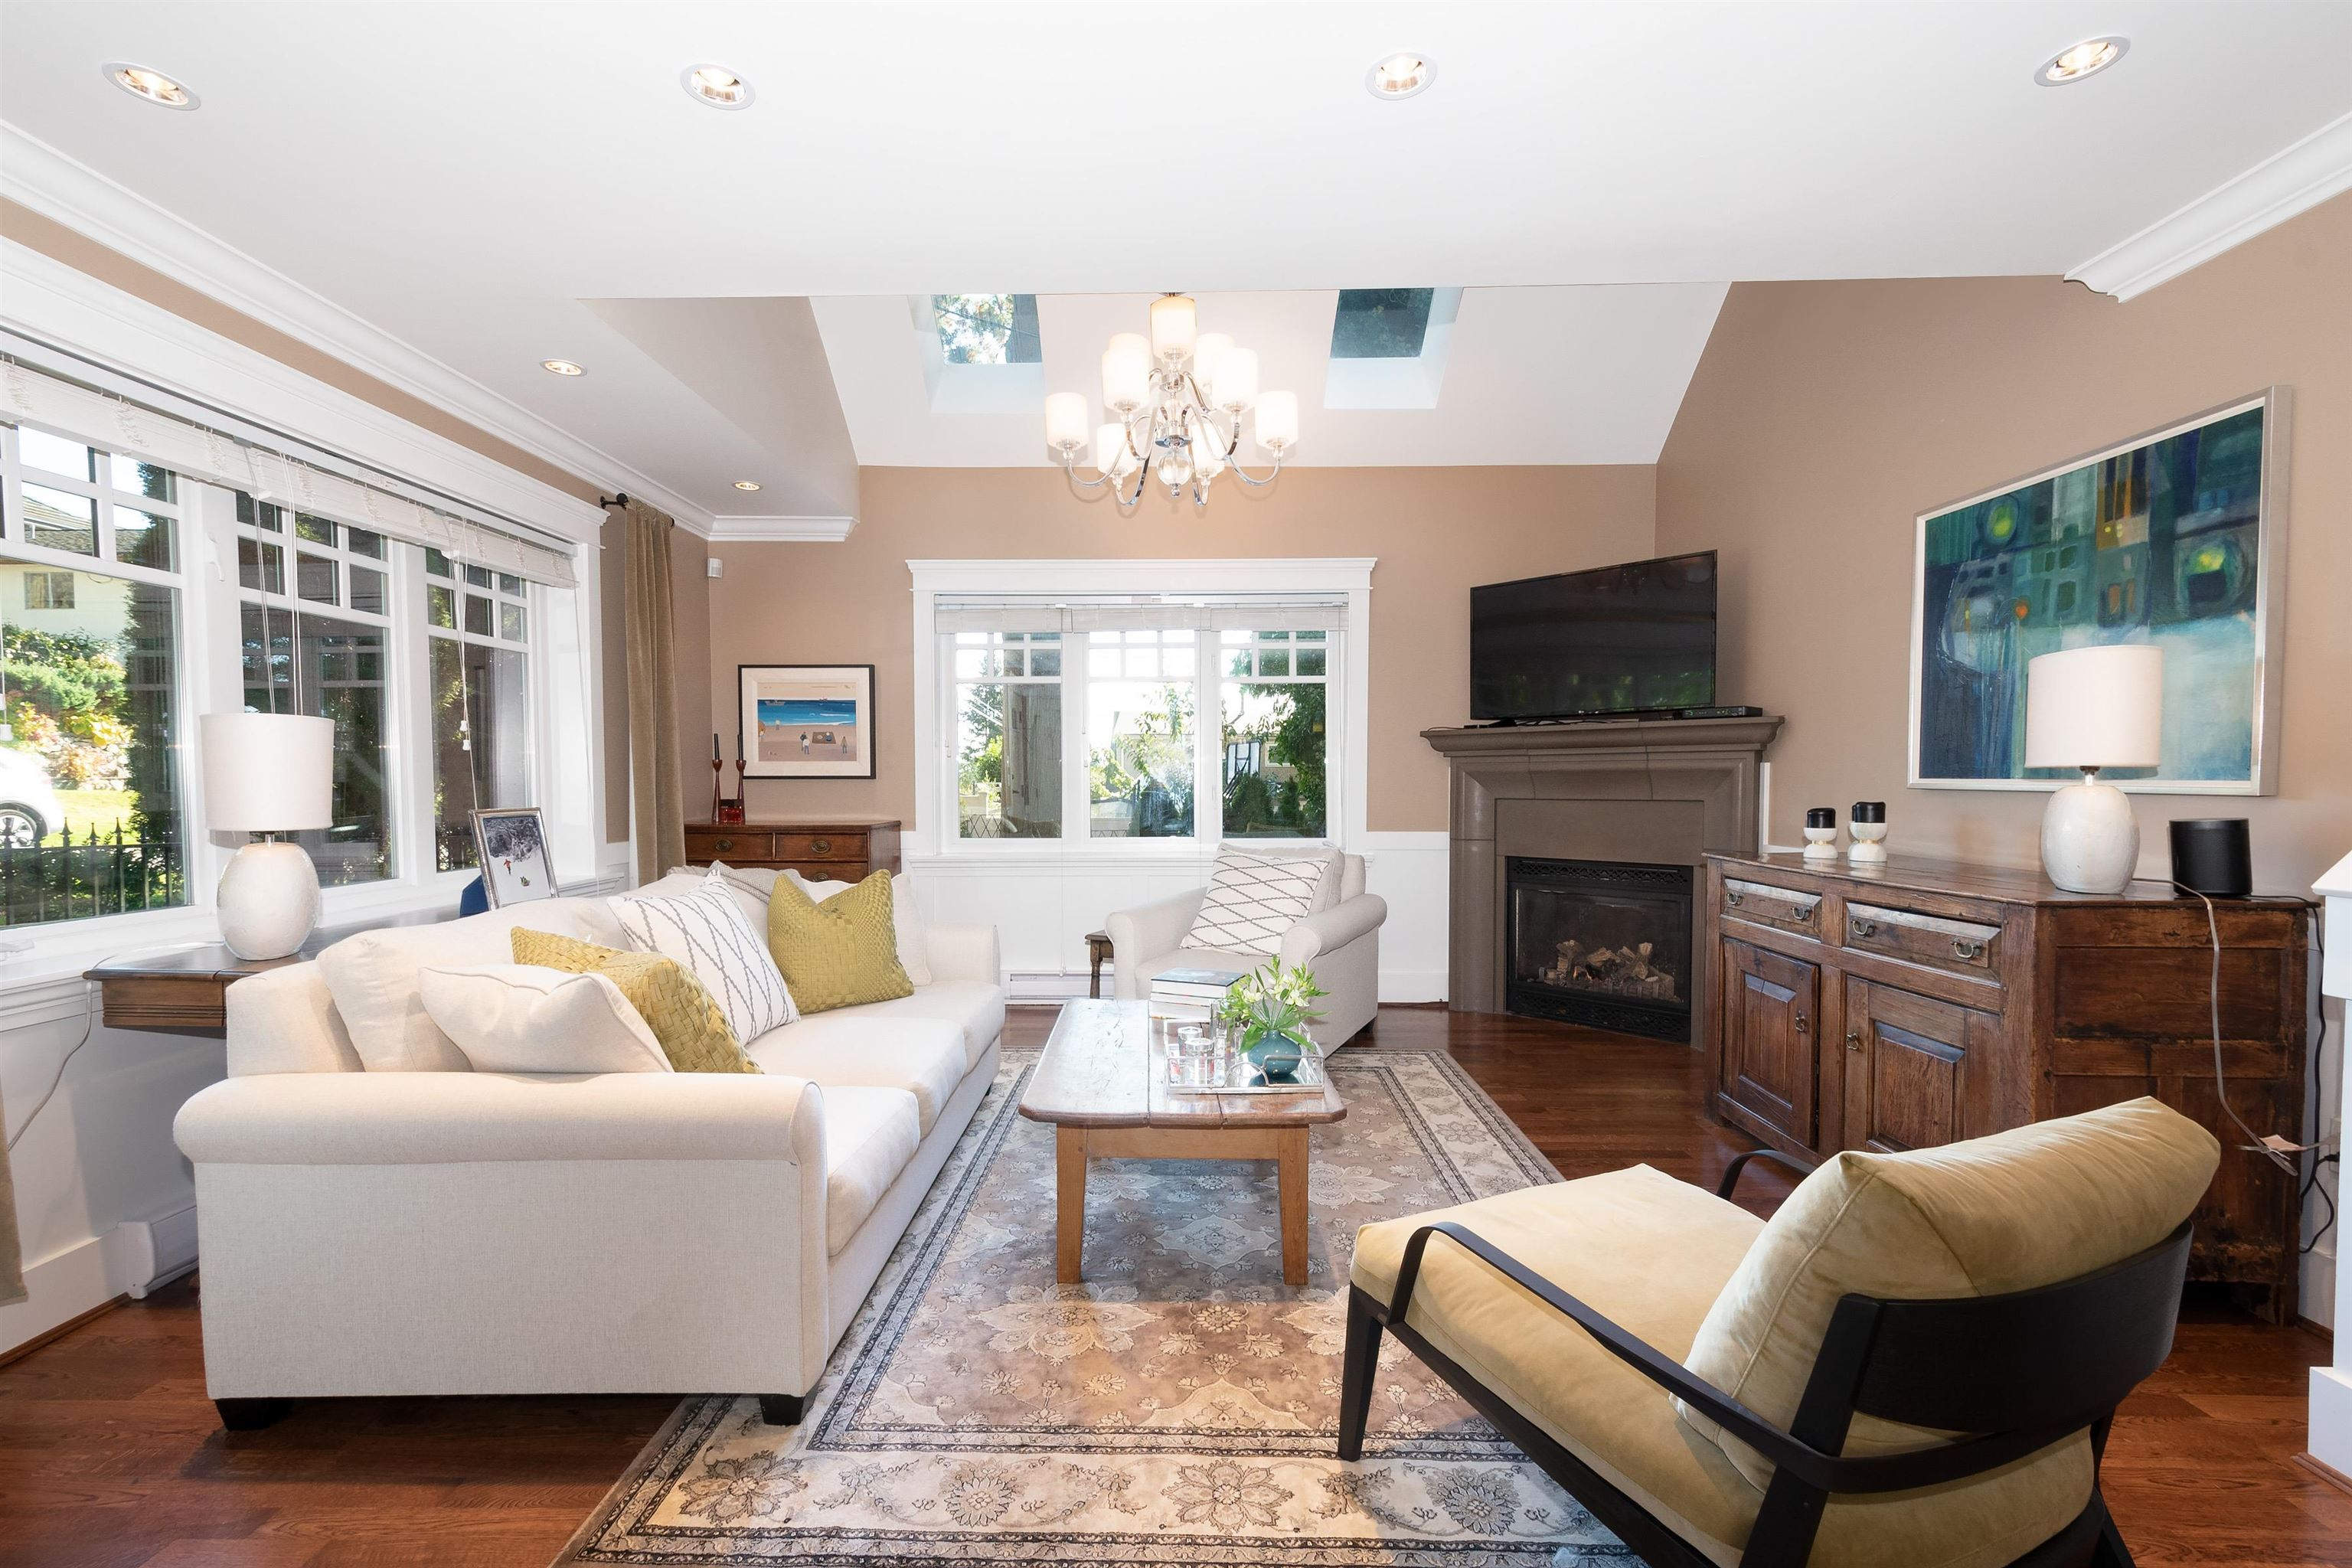 Listing image of 3359 CHESTERFIELD AVENUE